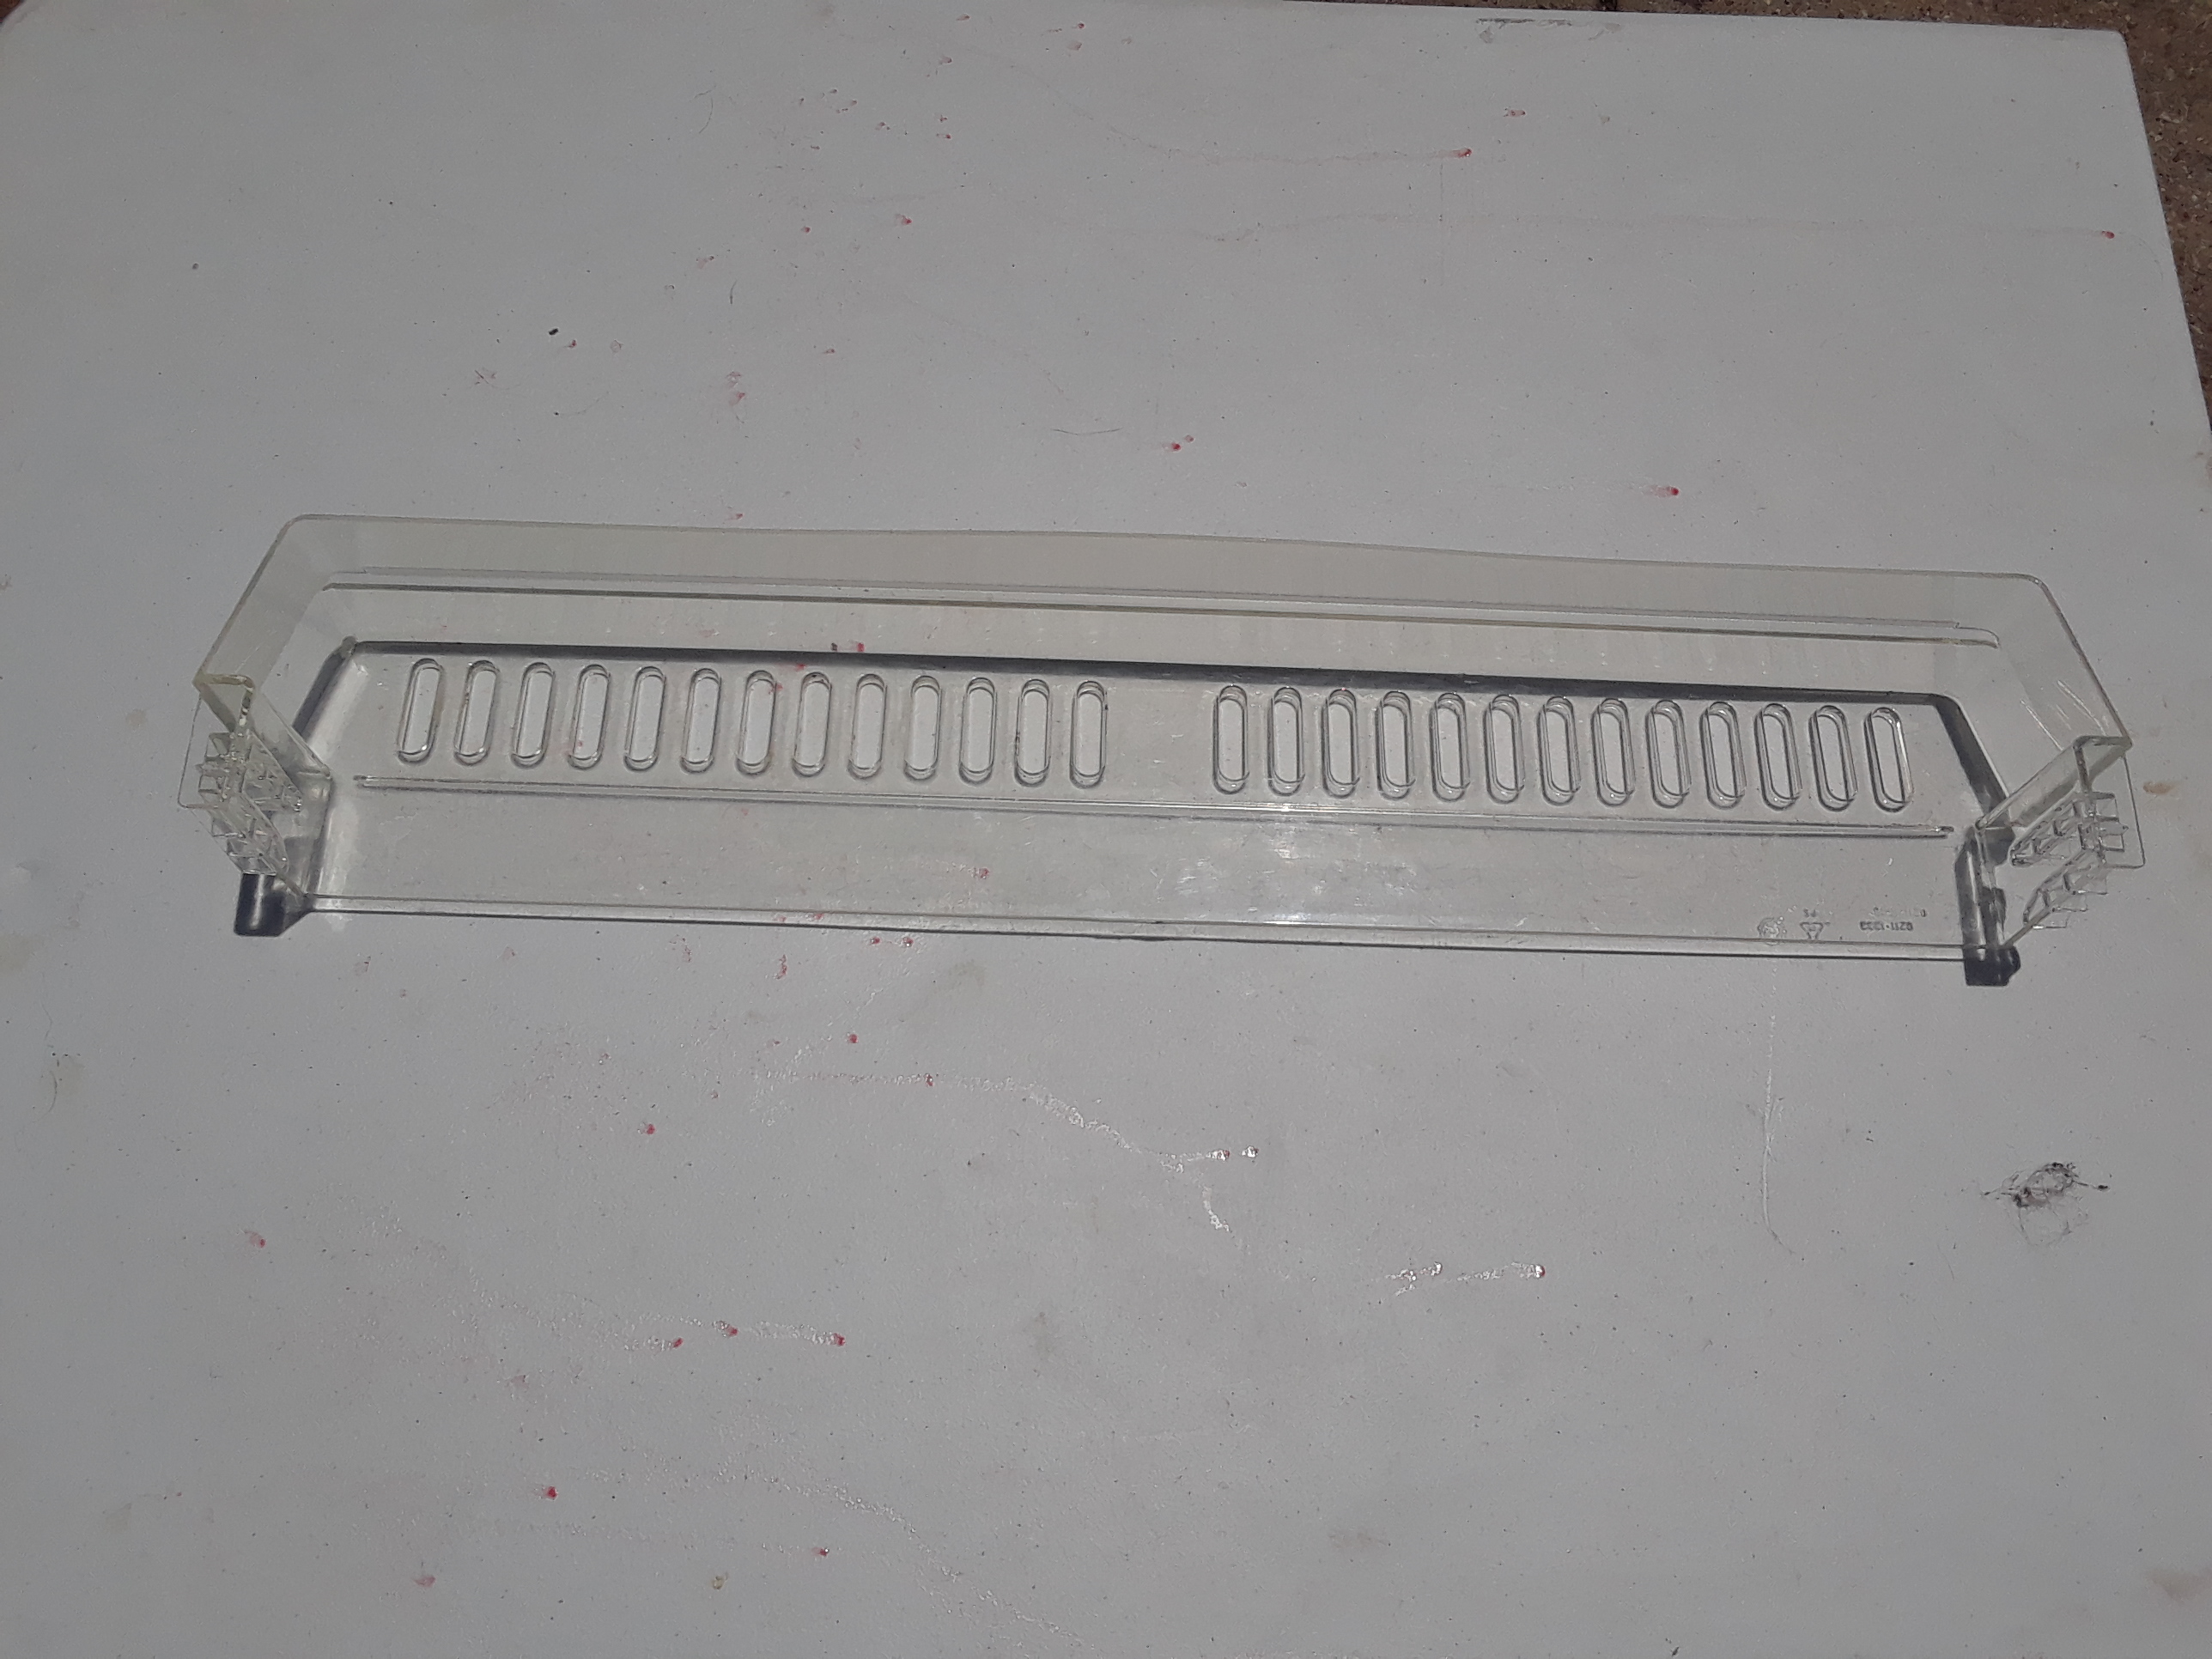 OUT OF STOCK Haier Refrigerator Door Rack 02111333 Model RRTG21PAAW